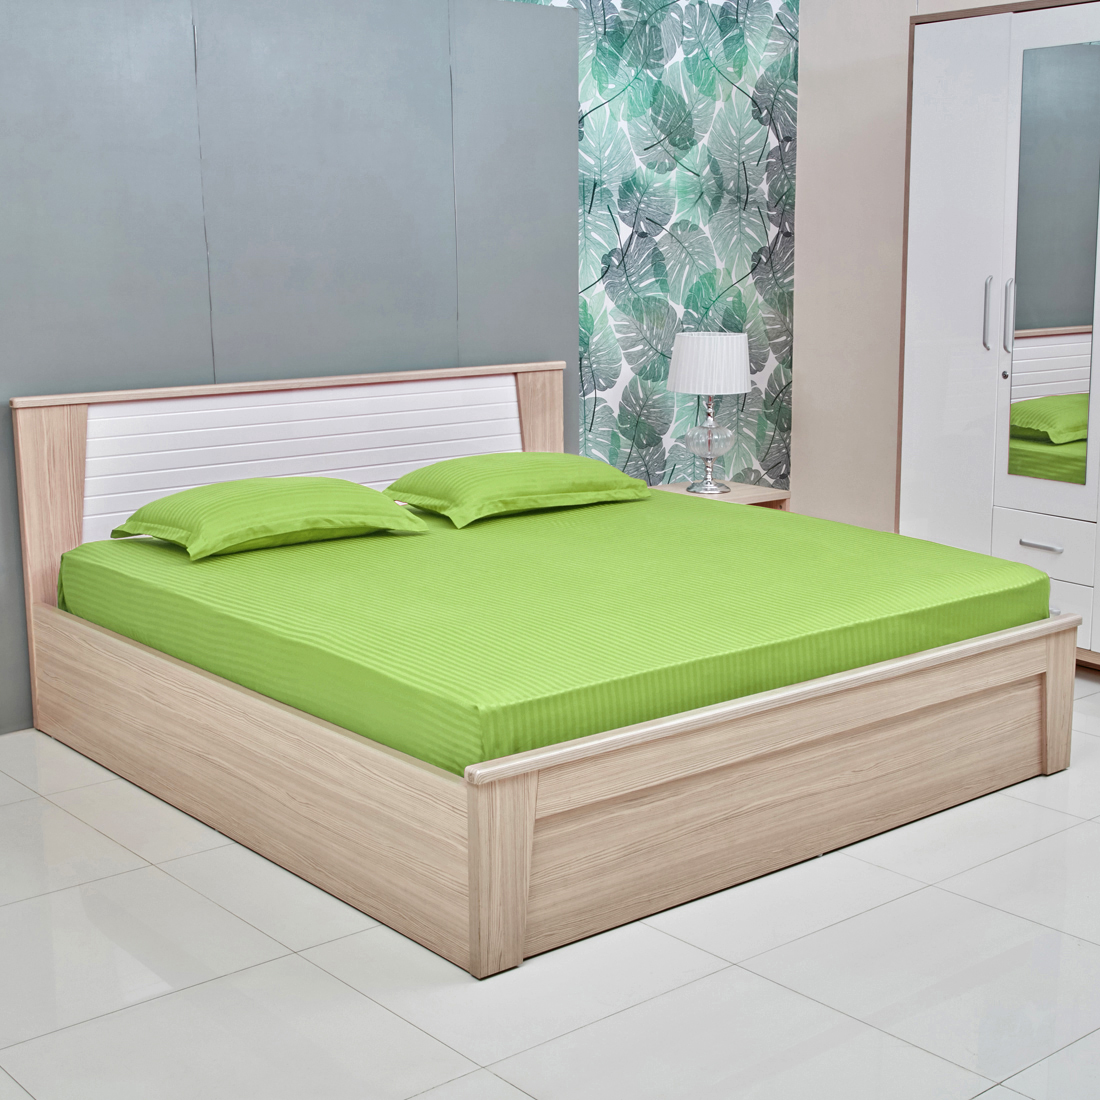 Amour Satin Stripe Cotton Double Bedsheets in Lime Colour by Living Essence